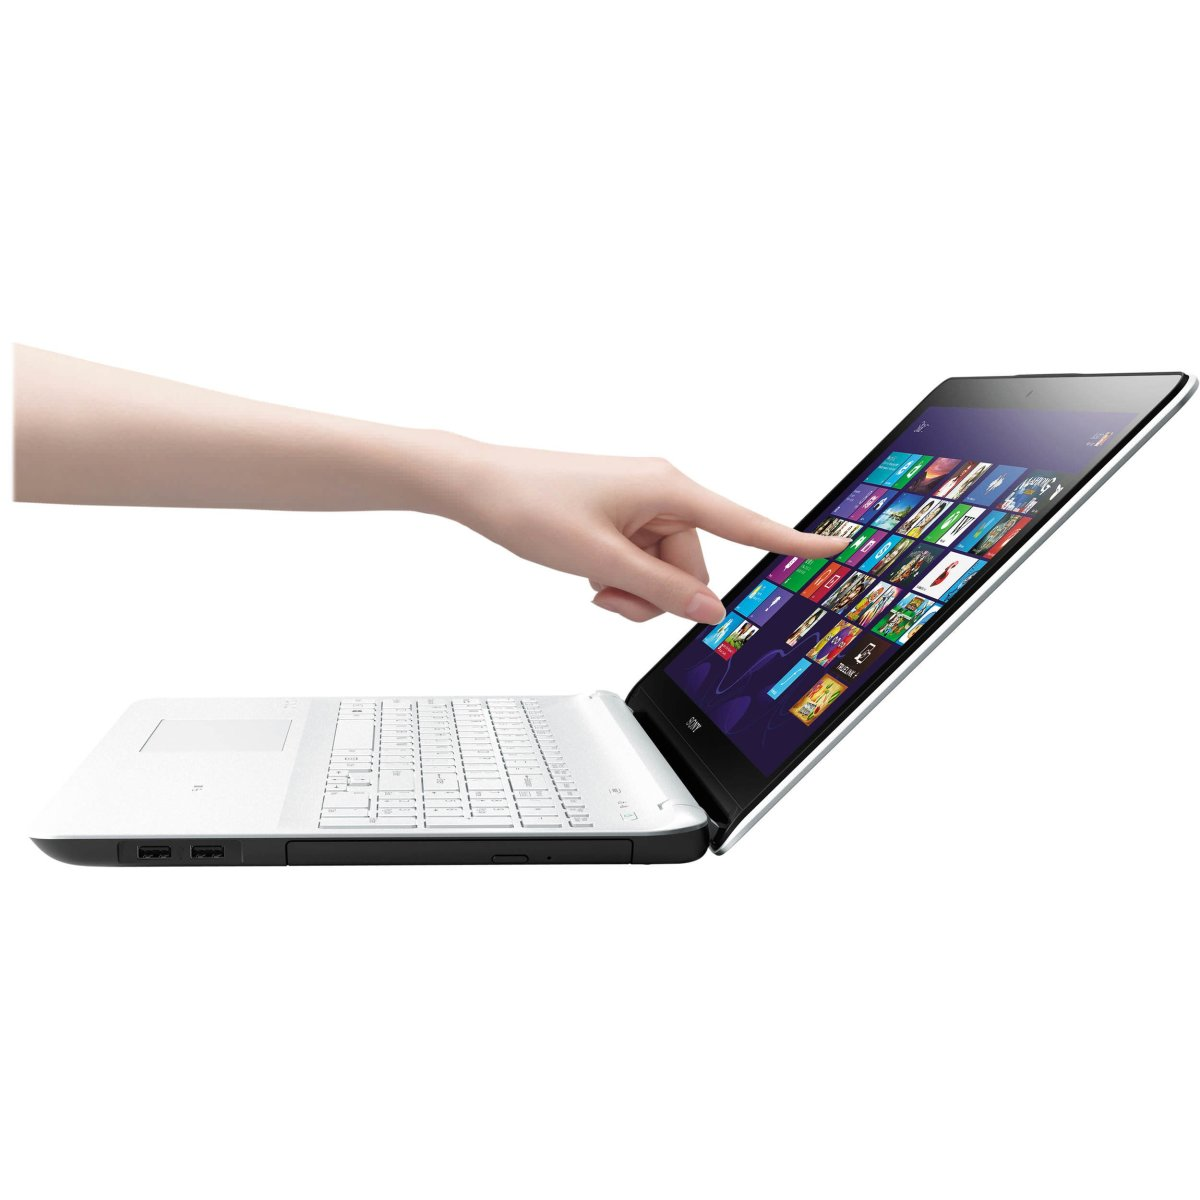 Sony VAIO FIT 15E man hinh cam ung